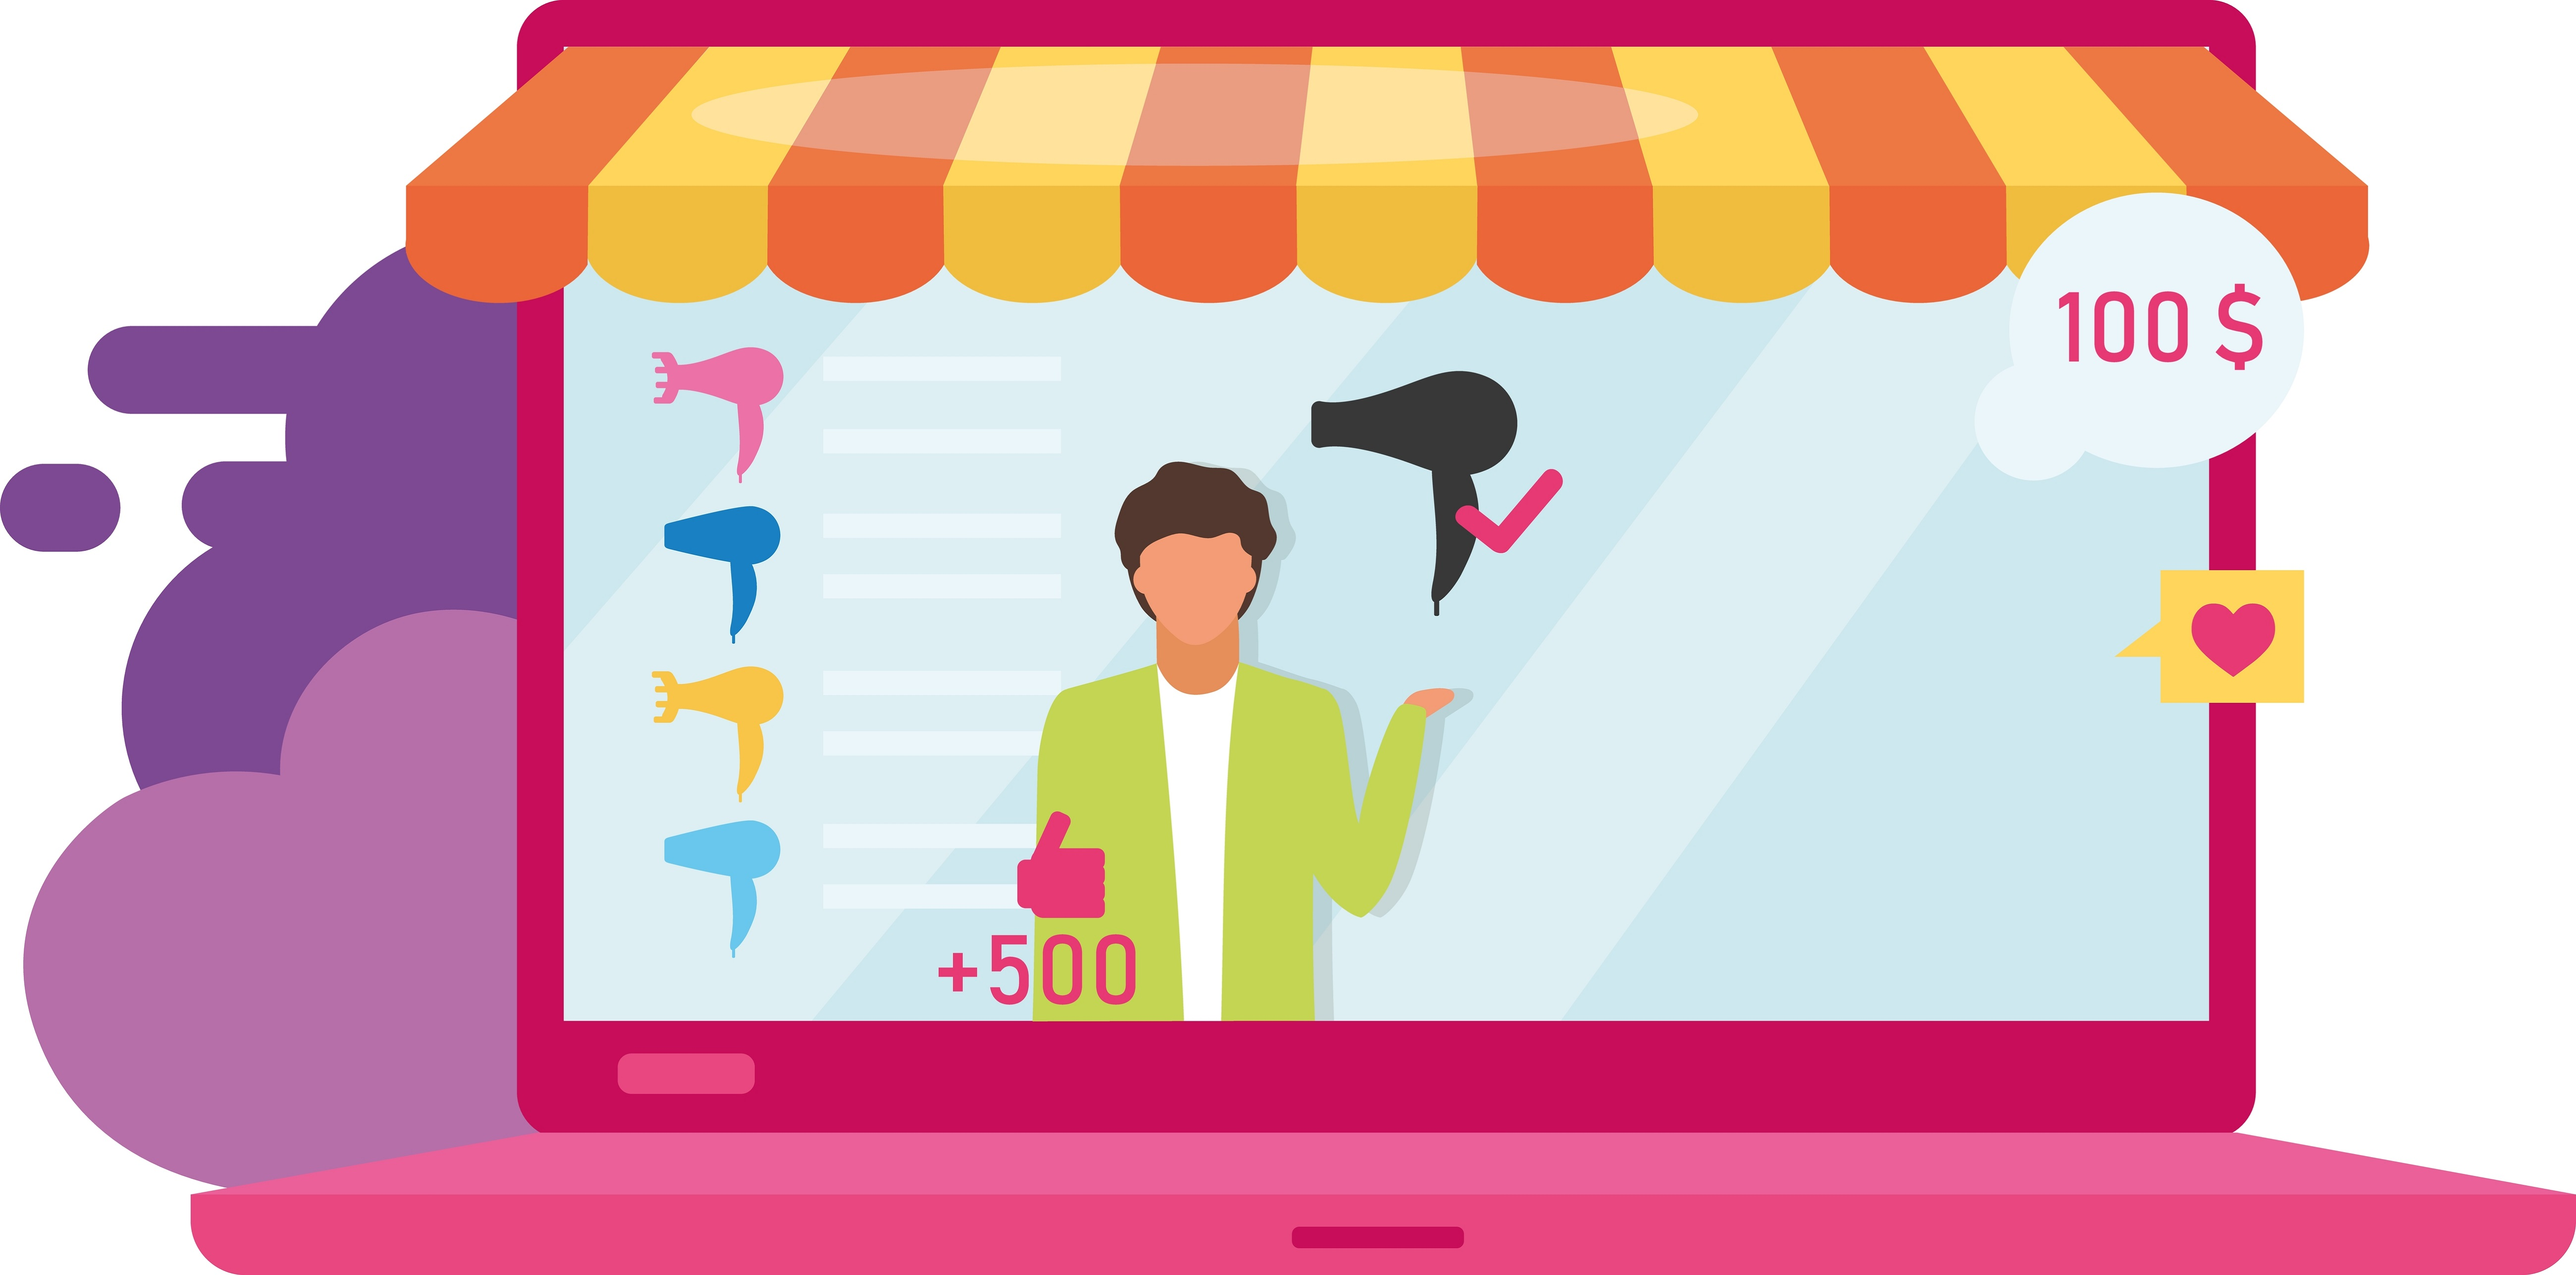 eCommerce product recommendations